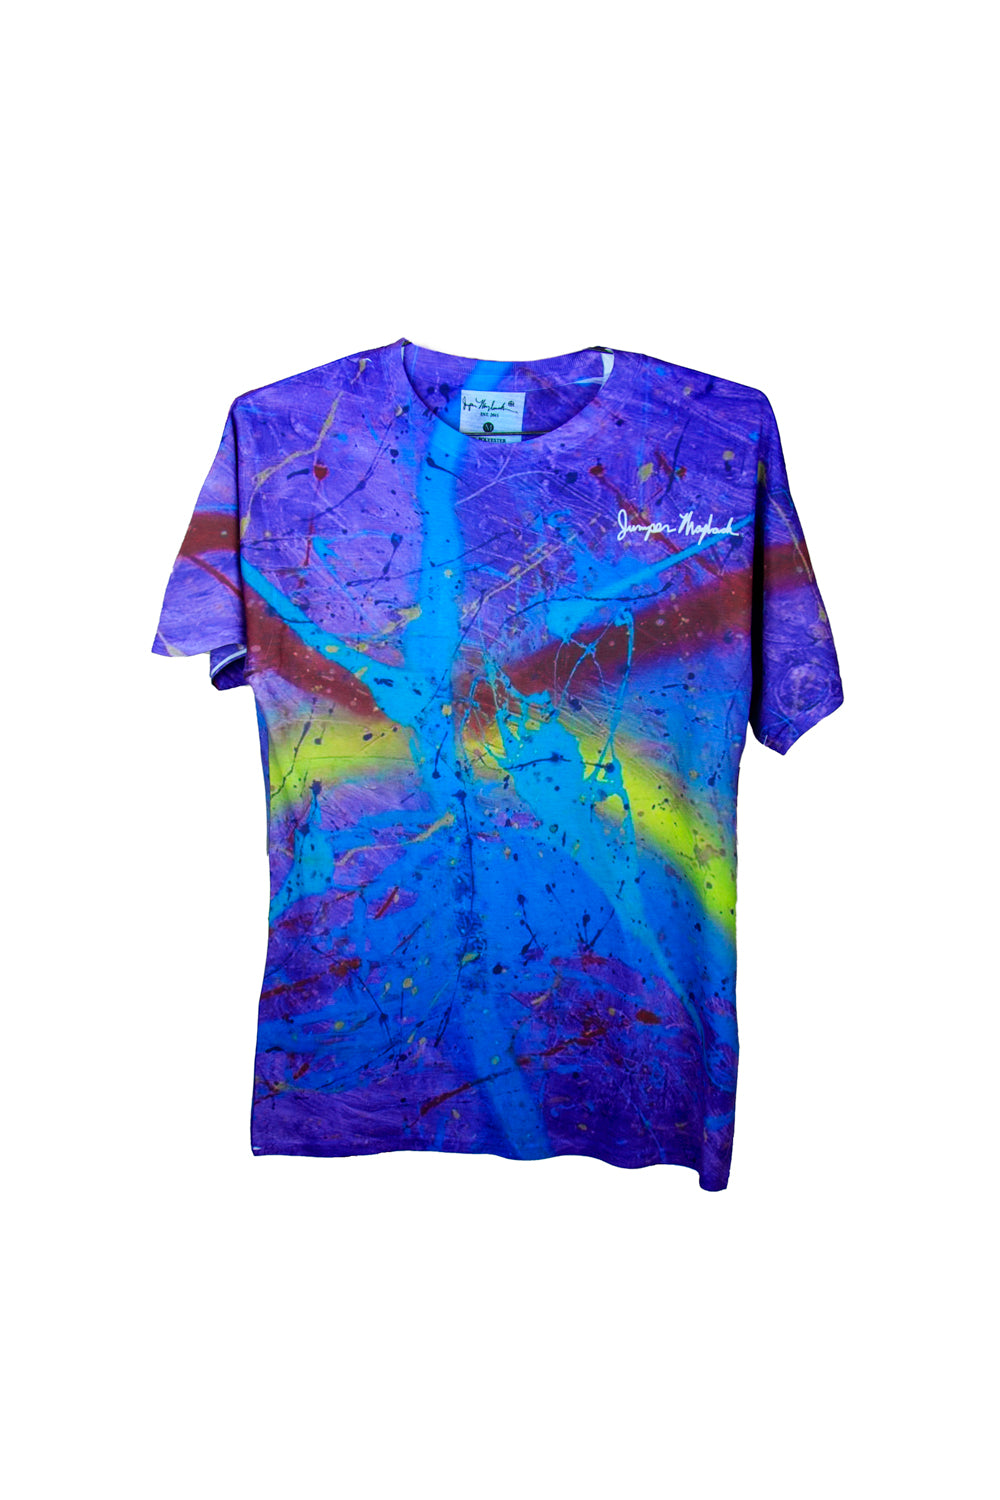 Psychedelic Universe Shirt by Jumper Maybach®